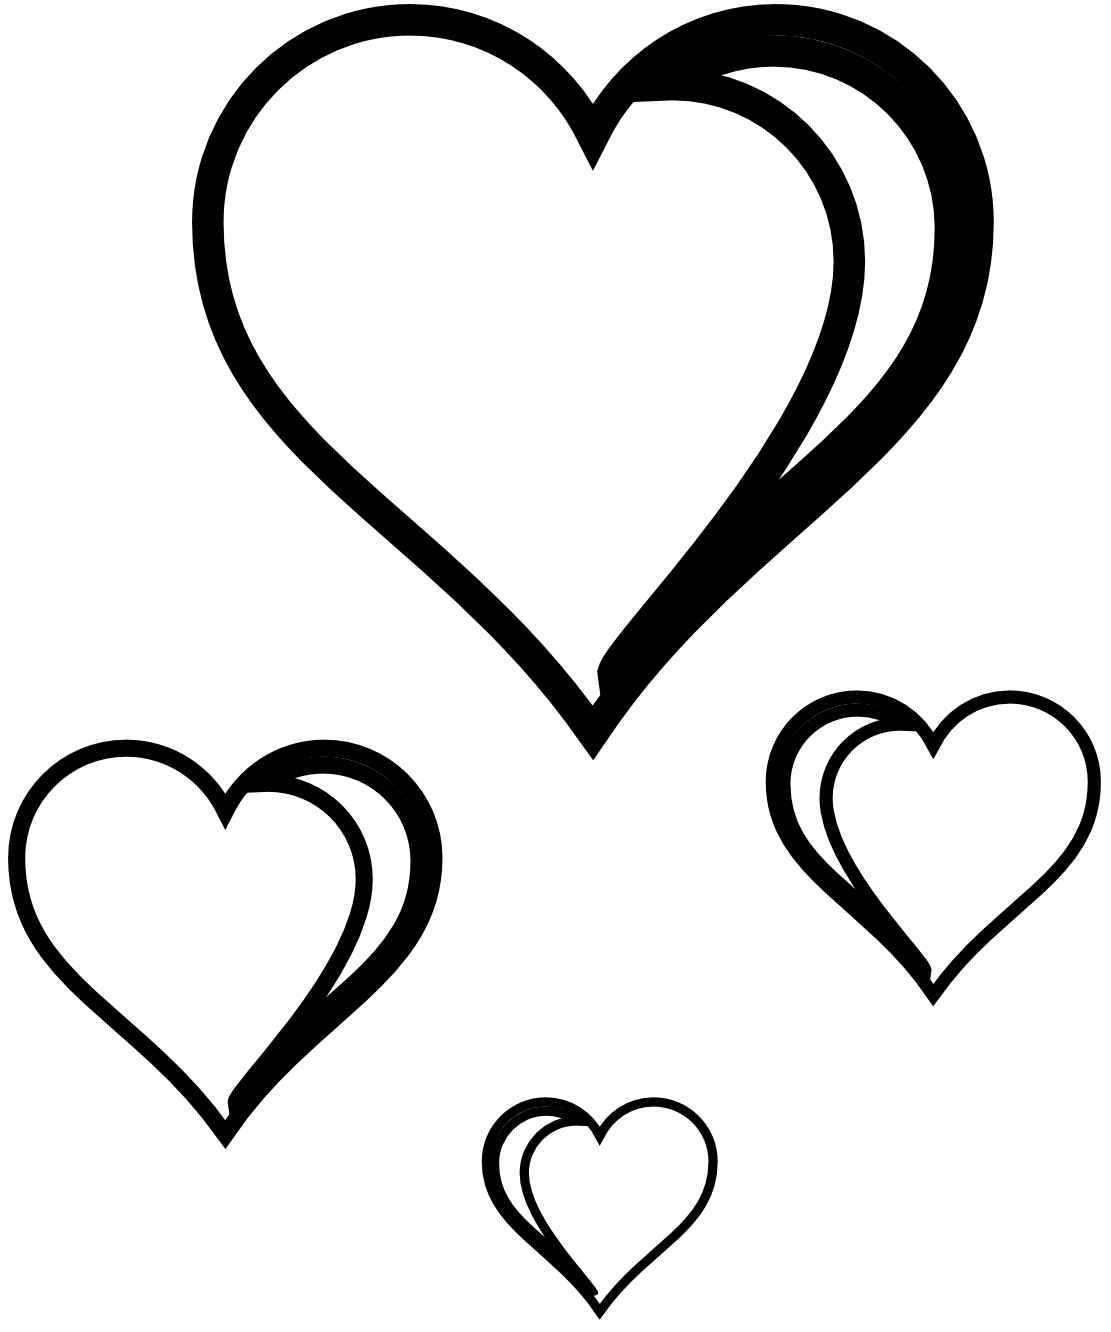 hight resolution of heart black and white clipart heart black and white free images 4